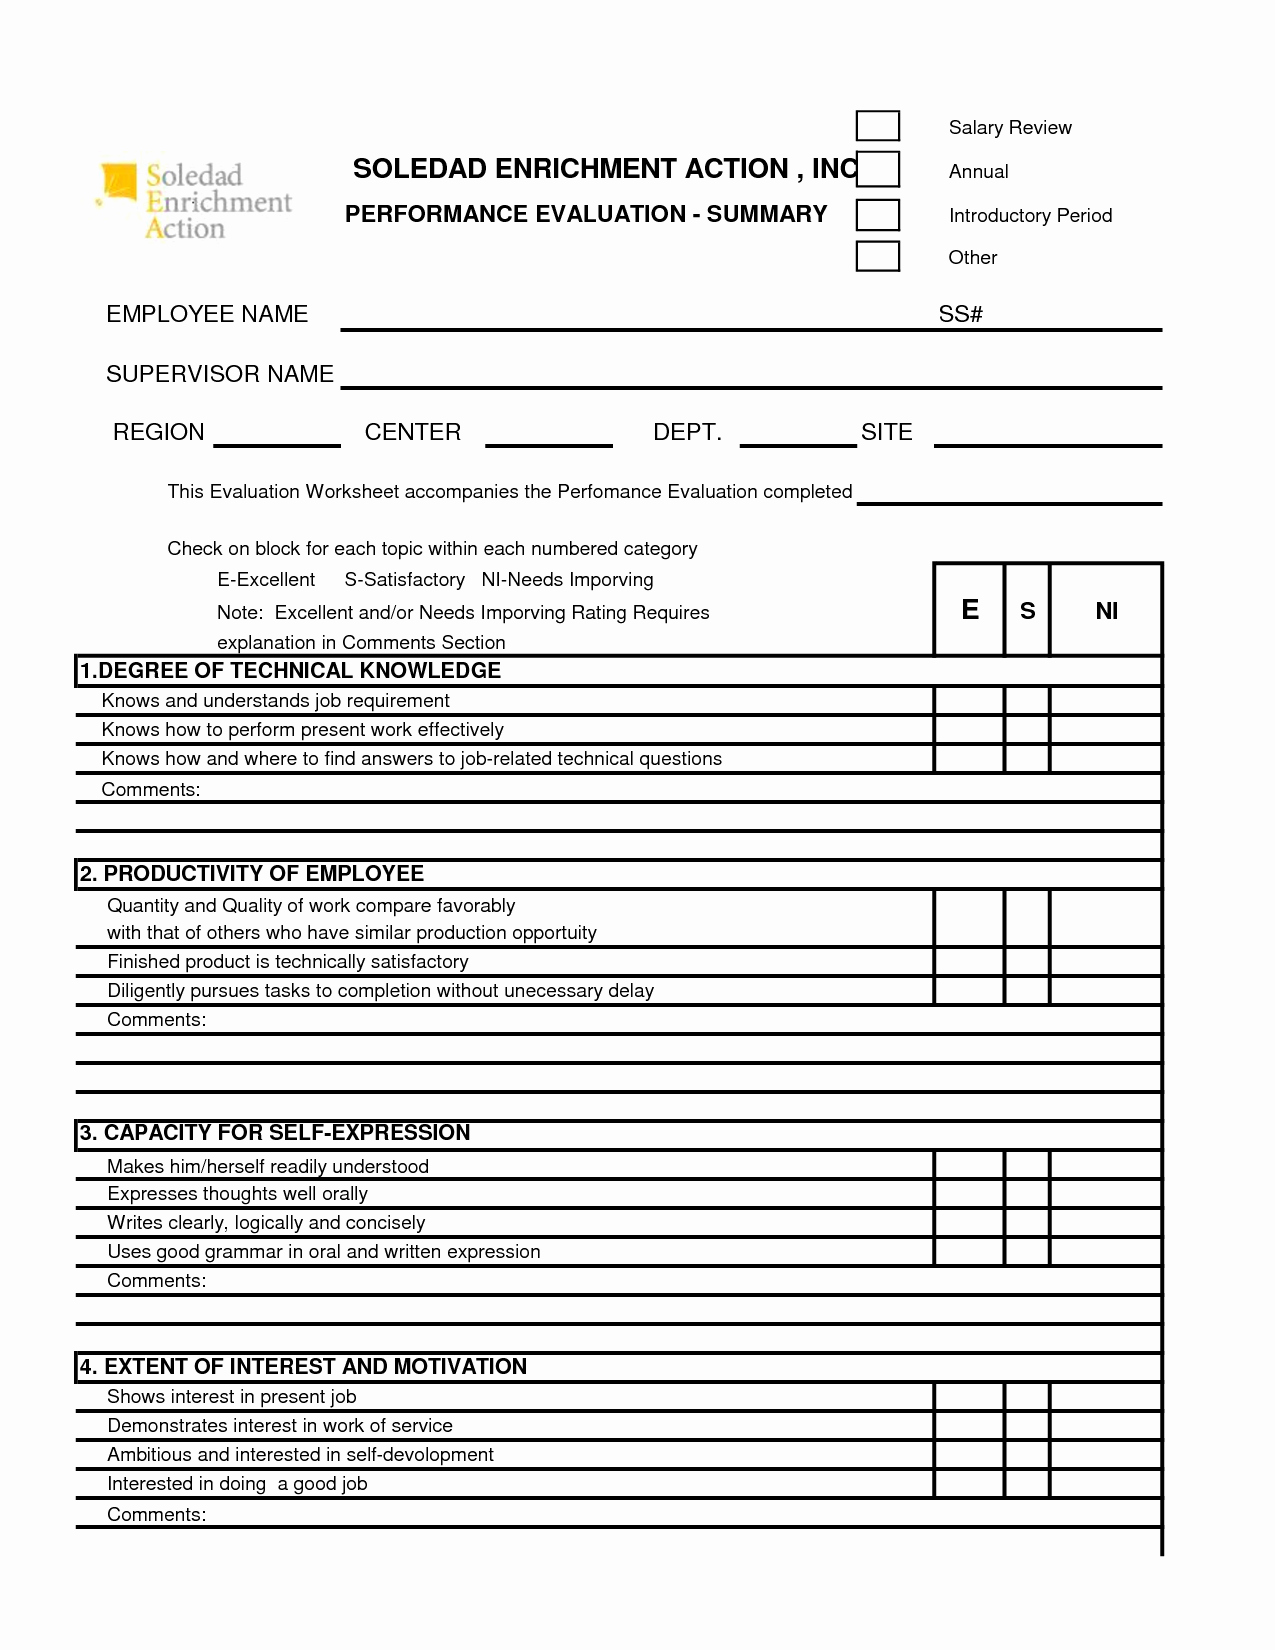 Performance Evaluation form Template Elegant Free 360 Performance Appraisal form Google Search